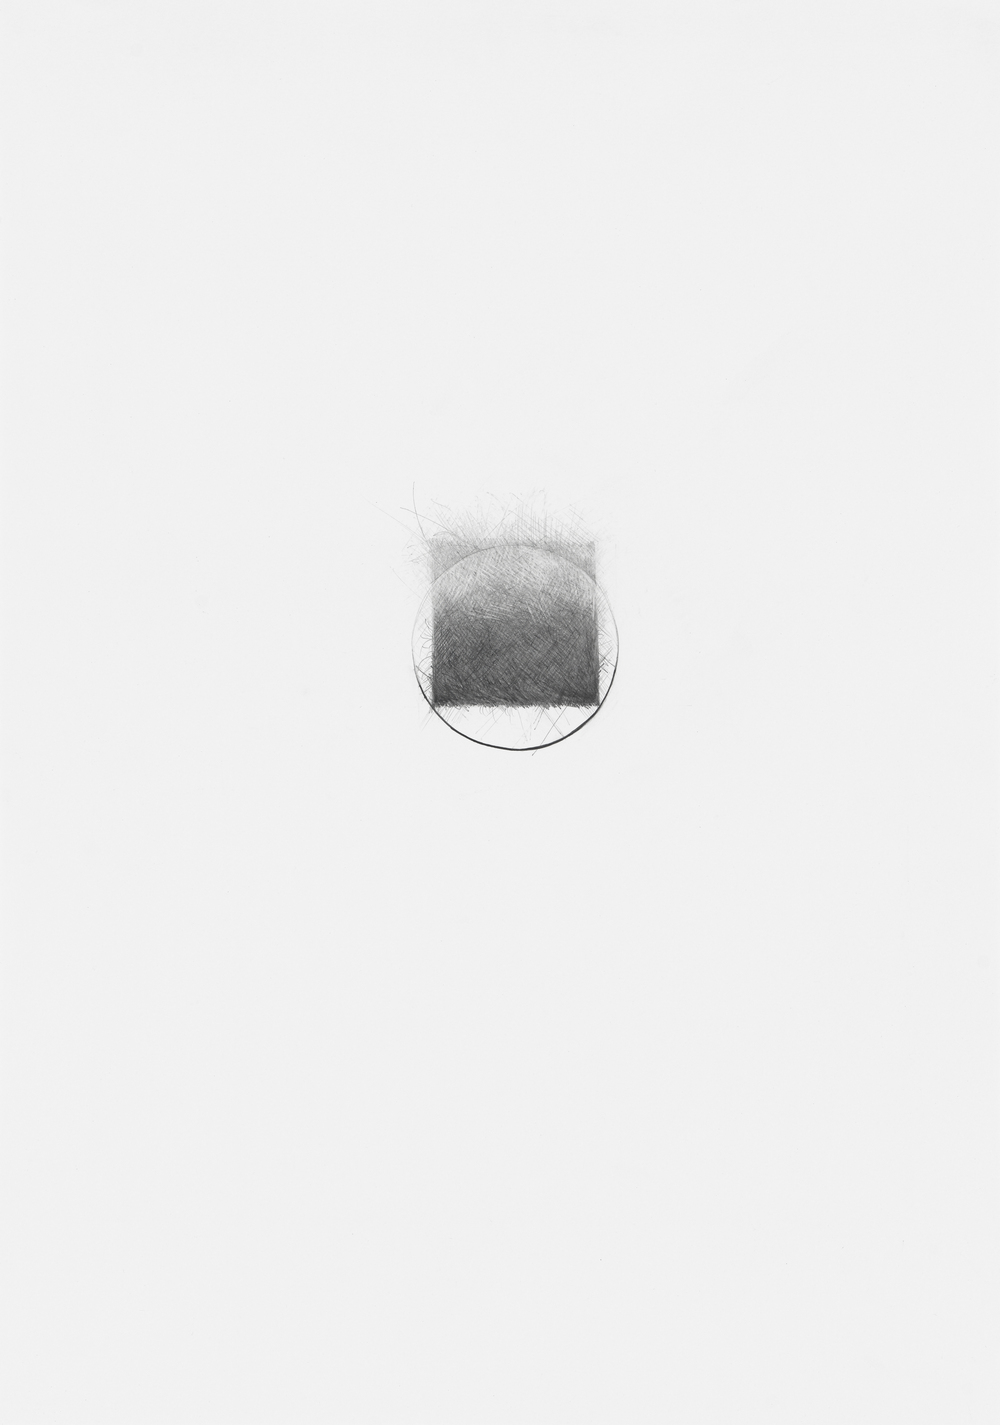 Sheila Ghidini, Grace 1, 2015, graphite and mica dust on paper, 28 1/2 x 22 1/2 inches